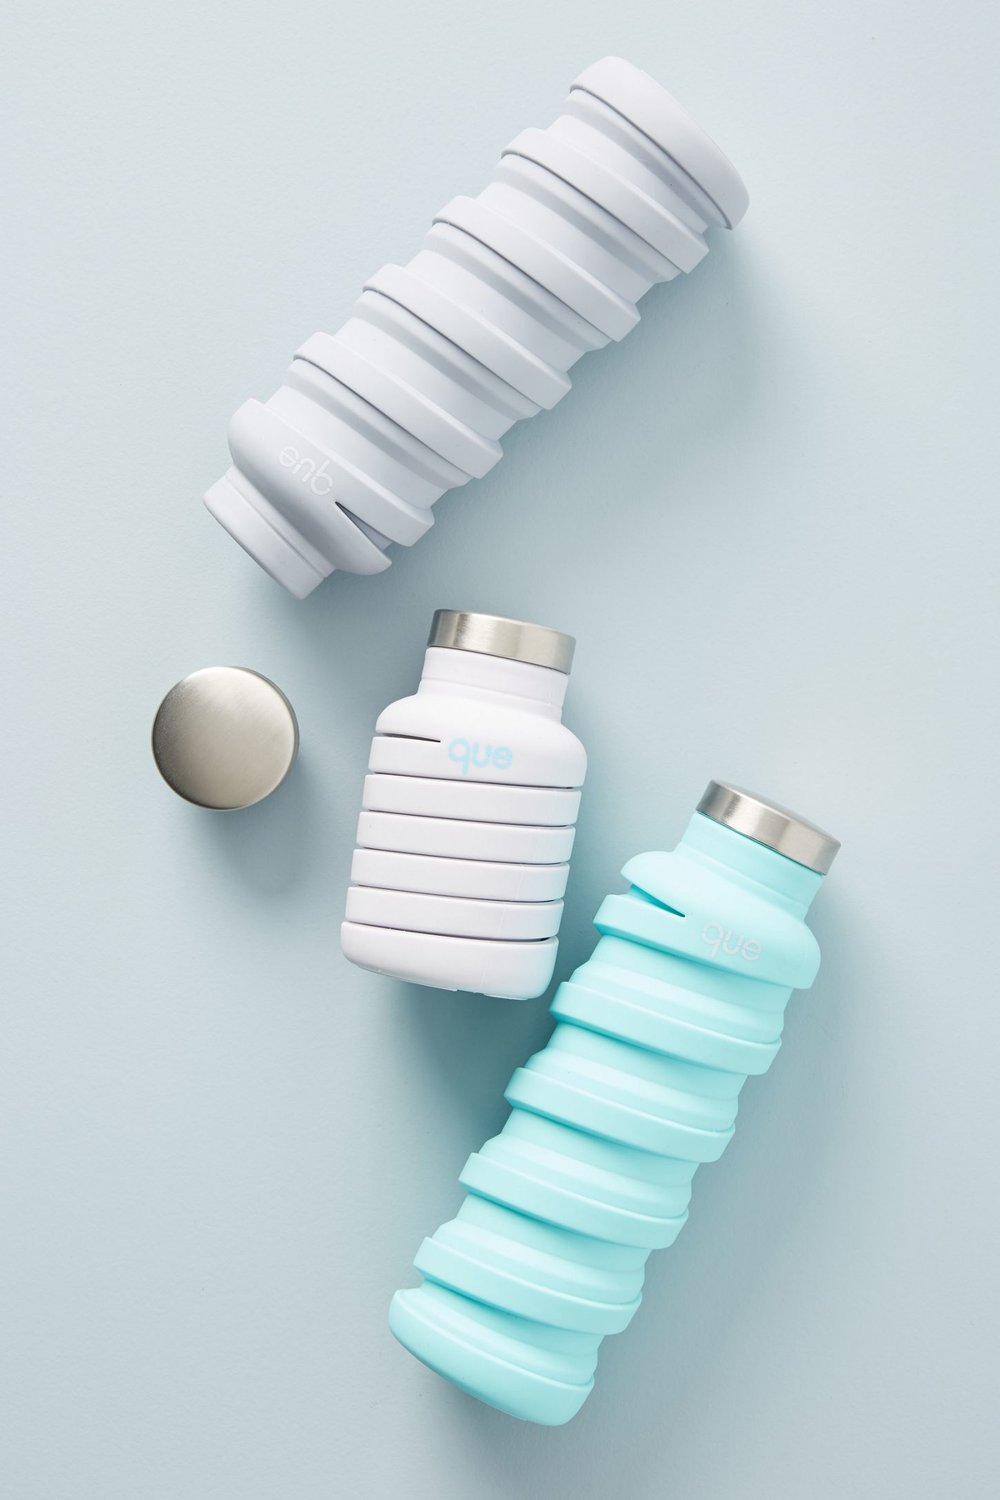 Que Bottle - Que Bottle is everything you'd want in a reusable bottle. It's collapsable for easy storage, BPA-free, dishwasher safe, and most importantly doesn't make your water taste like weird (I have one so I would know!). And it comes in 15 different fun colors to choose from for your friend (or yourself).Who is this perfect for? The health nut and outdoorsy campers in your life.